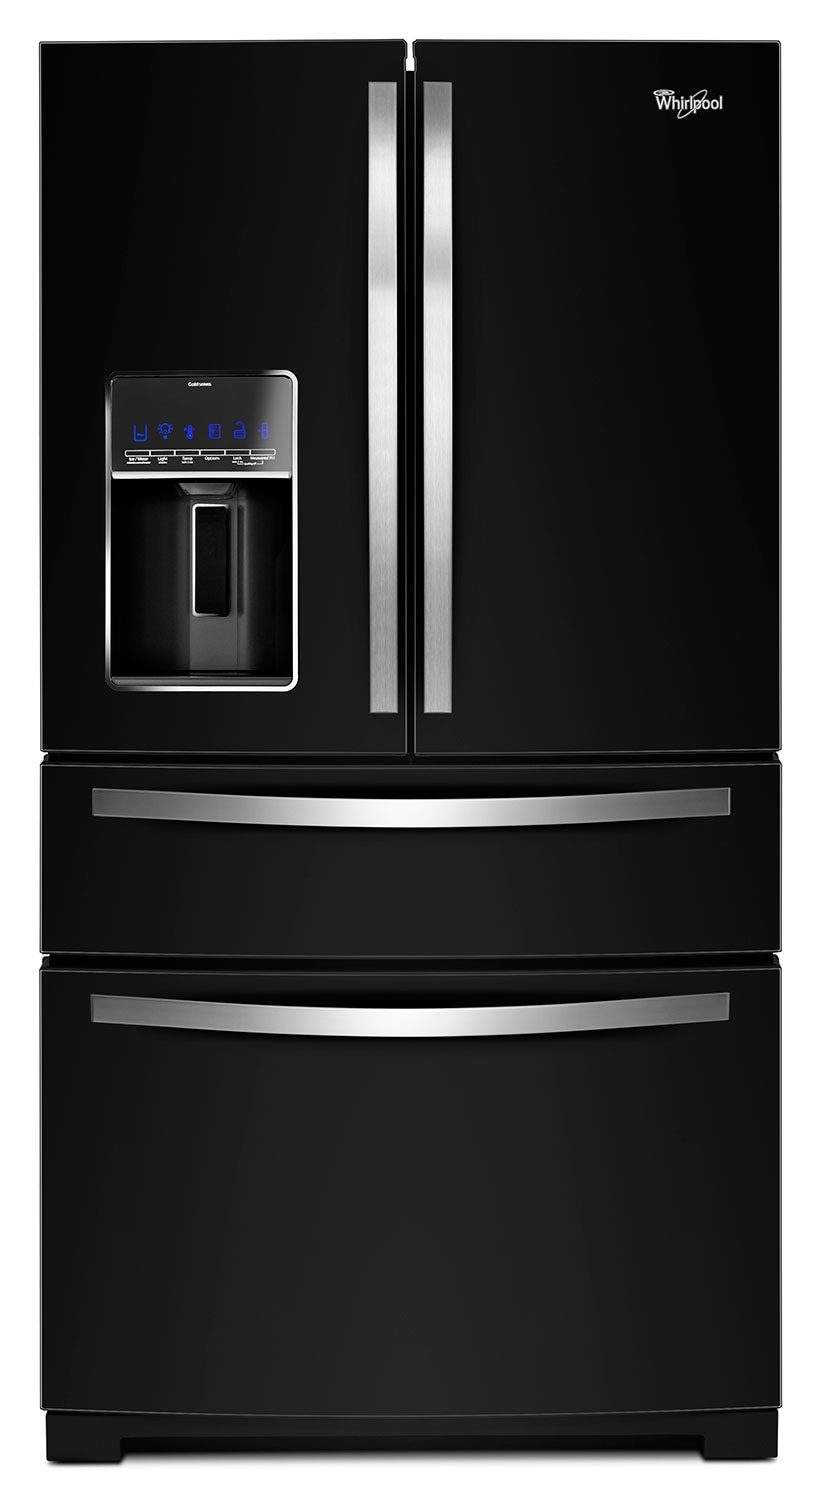 Refrigerators and Freezers - Whirlpool Black French Door Refrigerator (26.2 Cu. Ft.) - WRX988SIBE